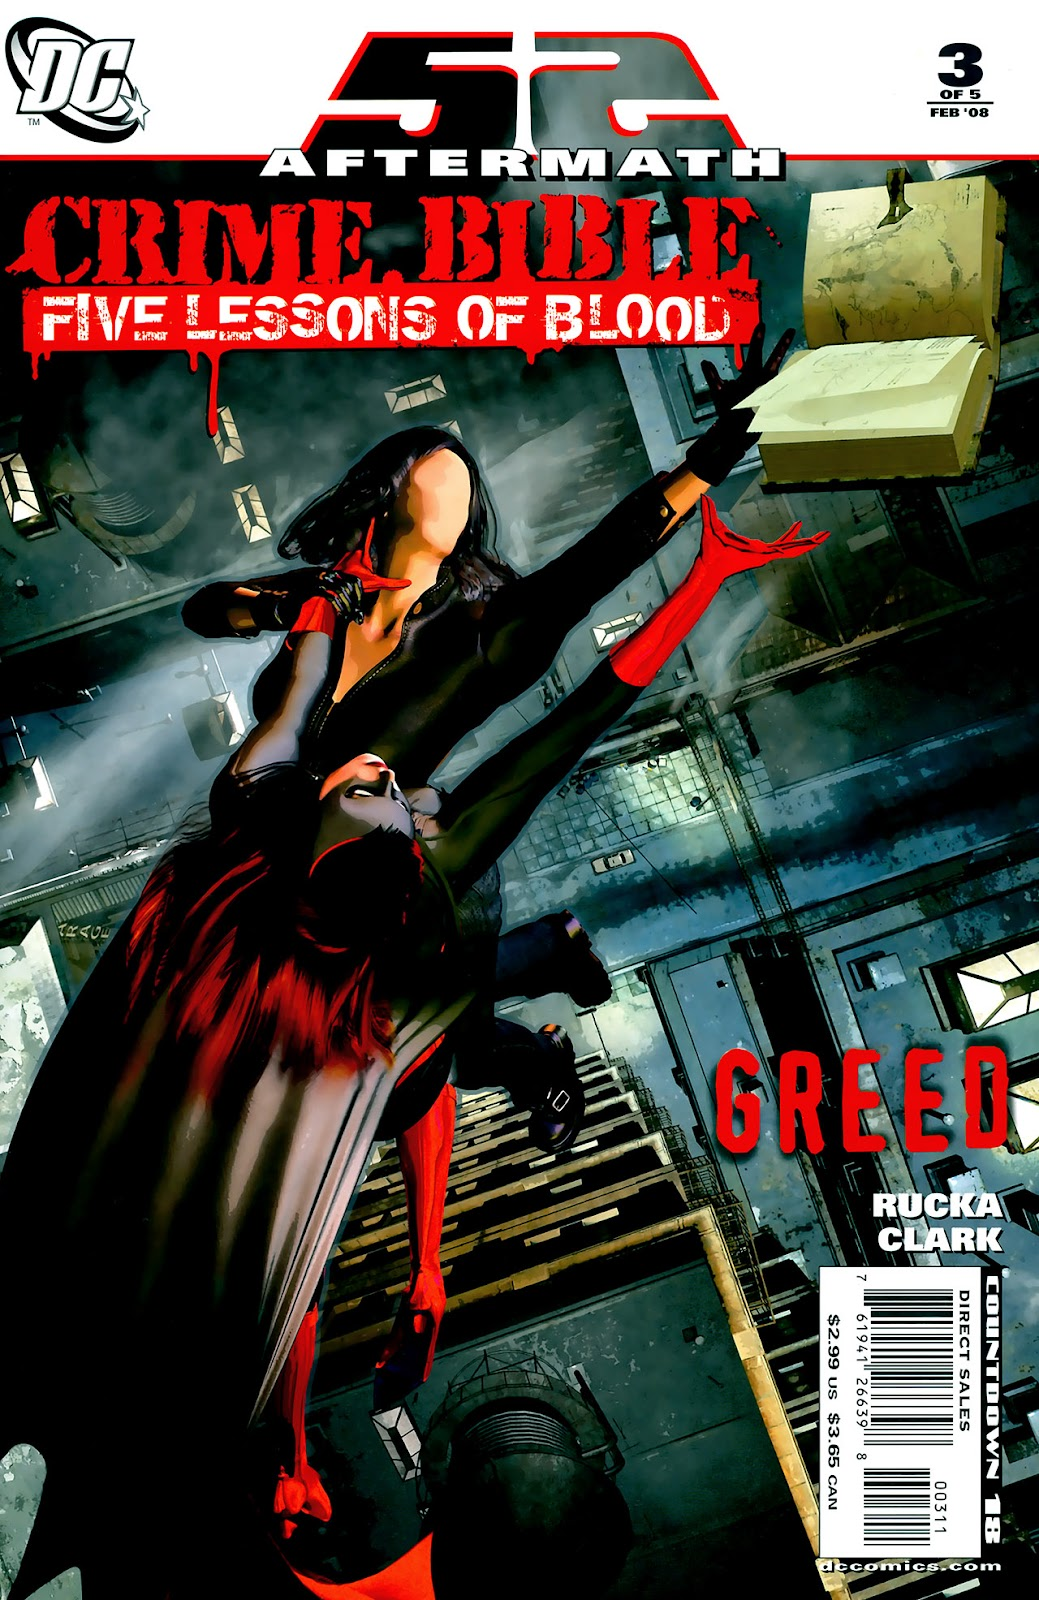 Crime Bible: The Five Lessons of Blood issue 3 - Page 1